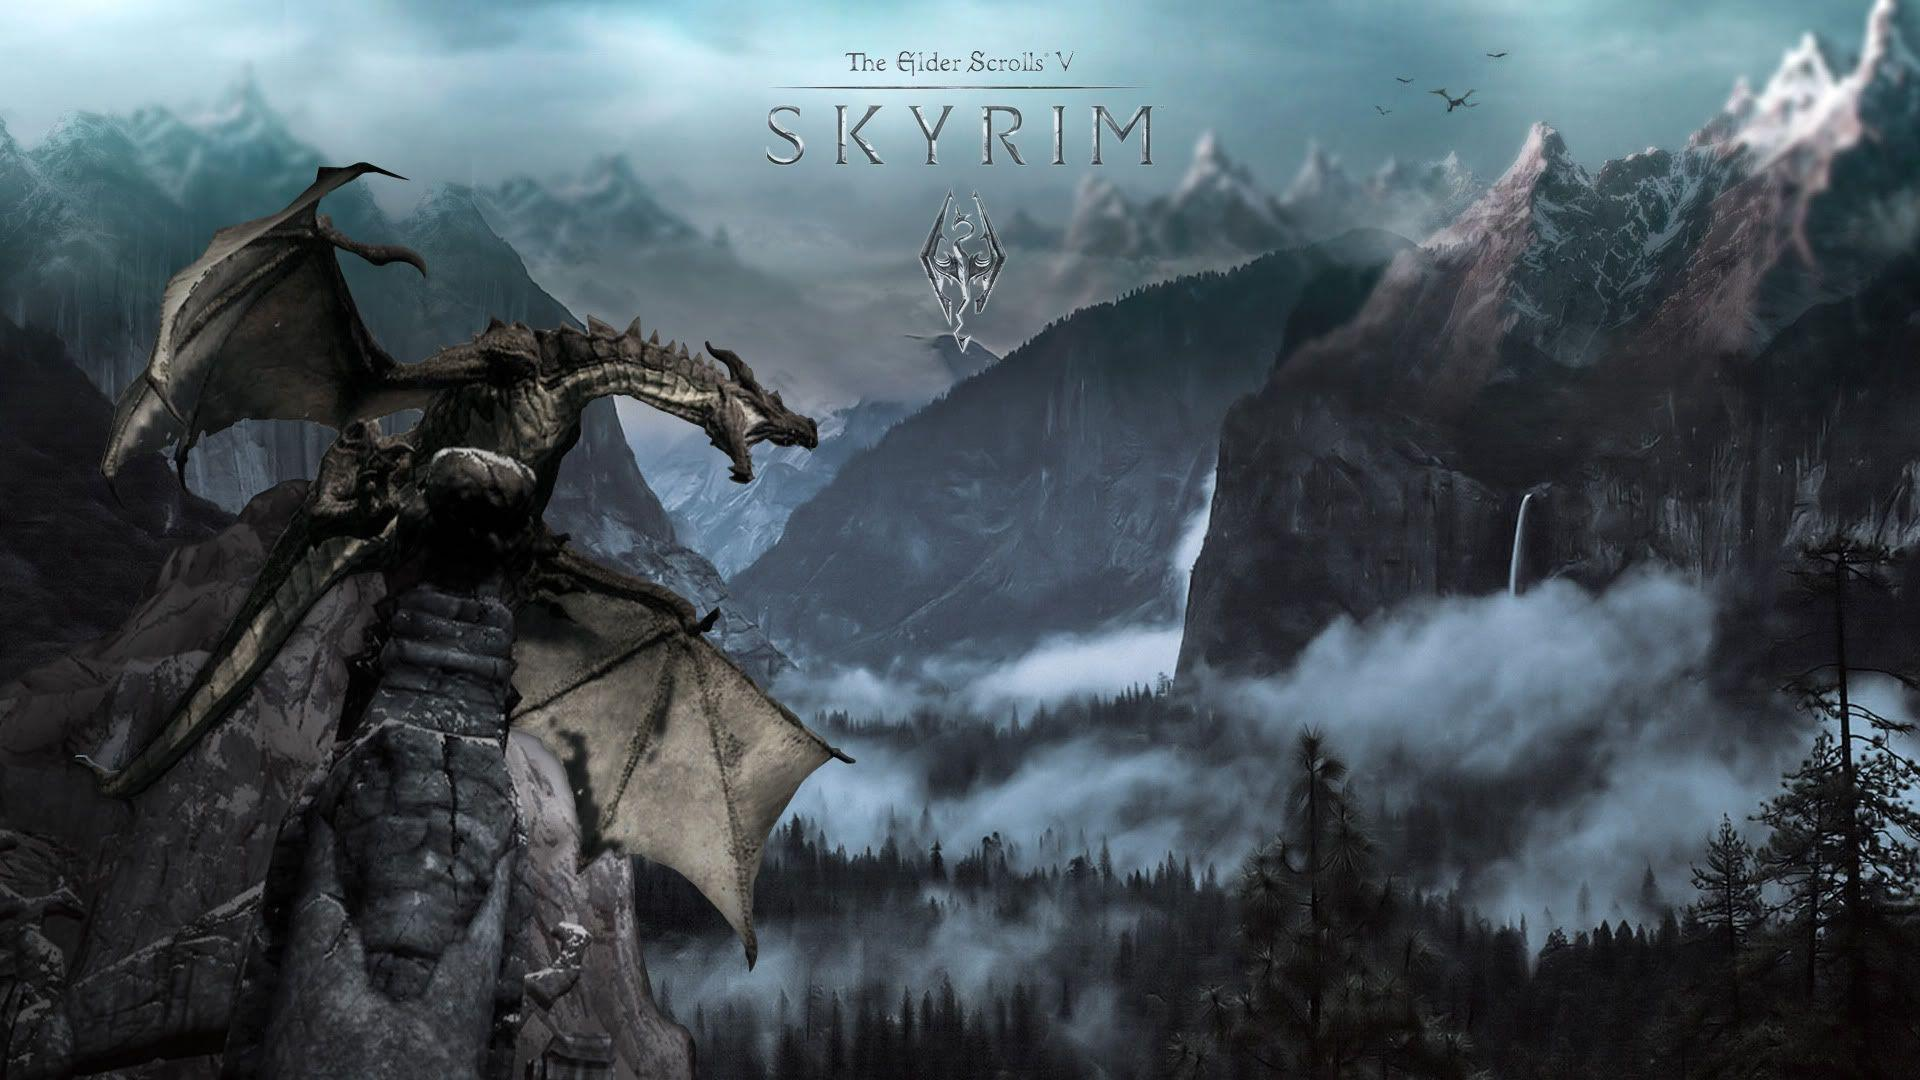 skyrim hd wallpapers 1366x768 - photo #9